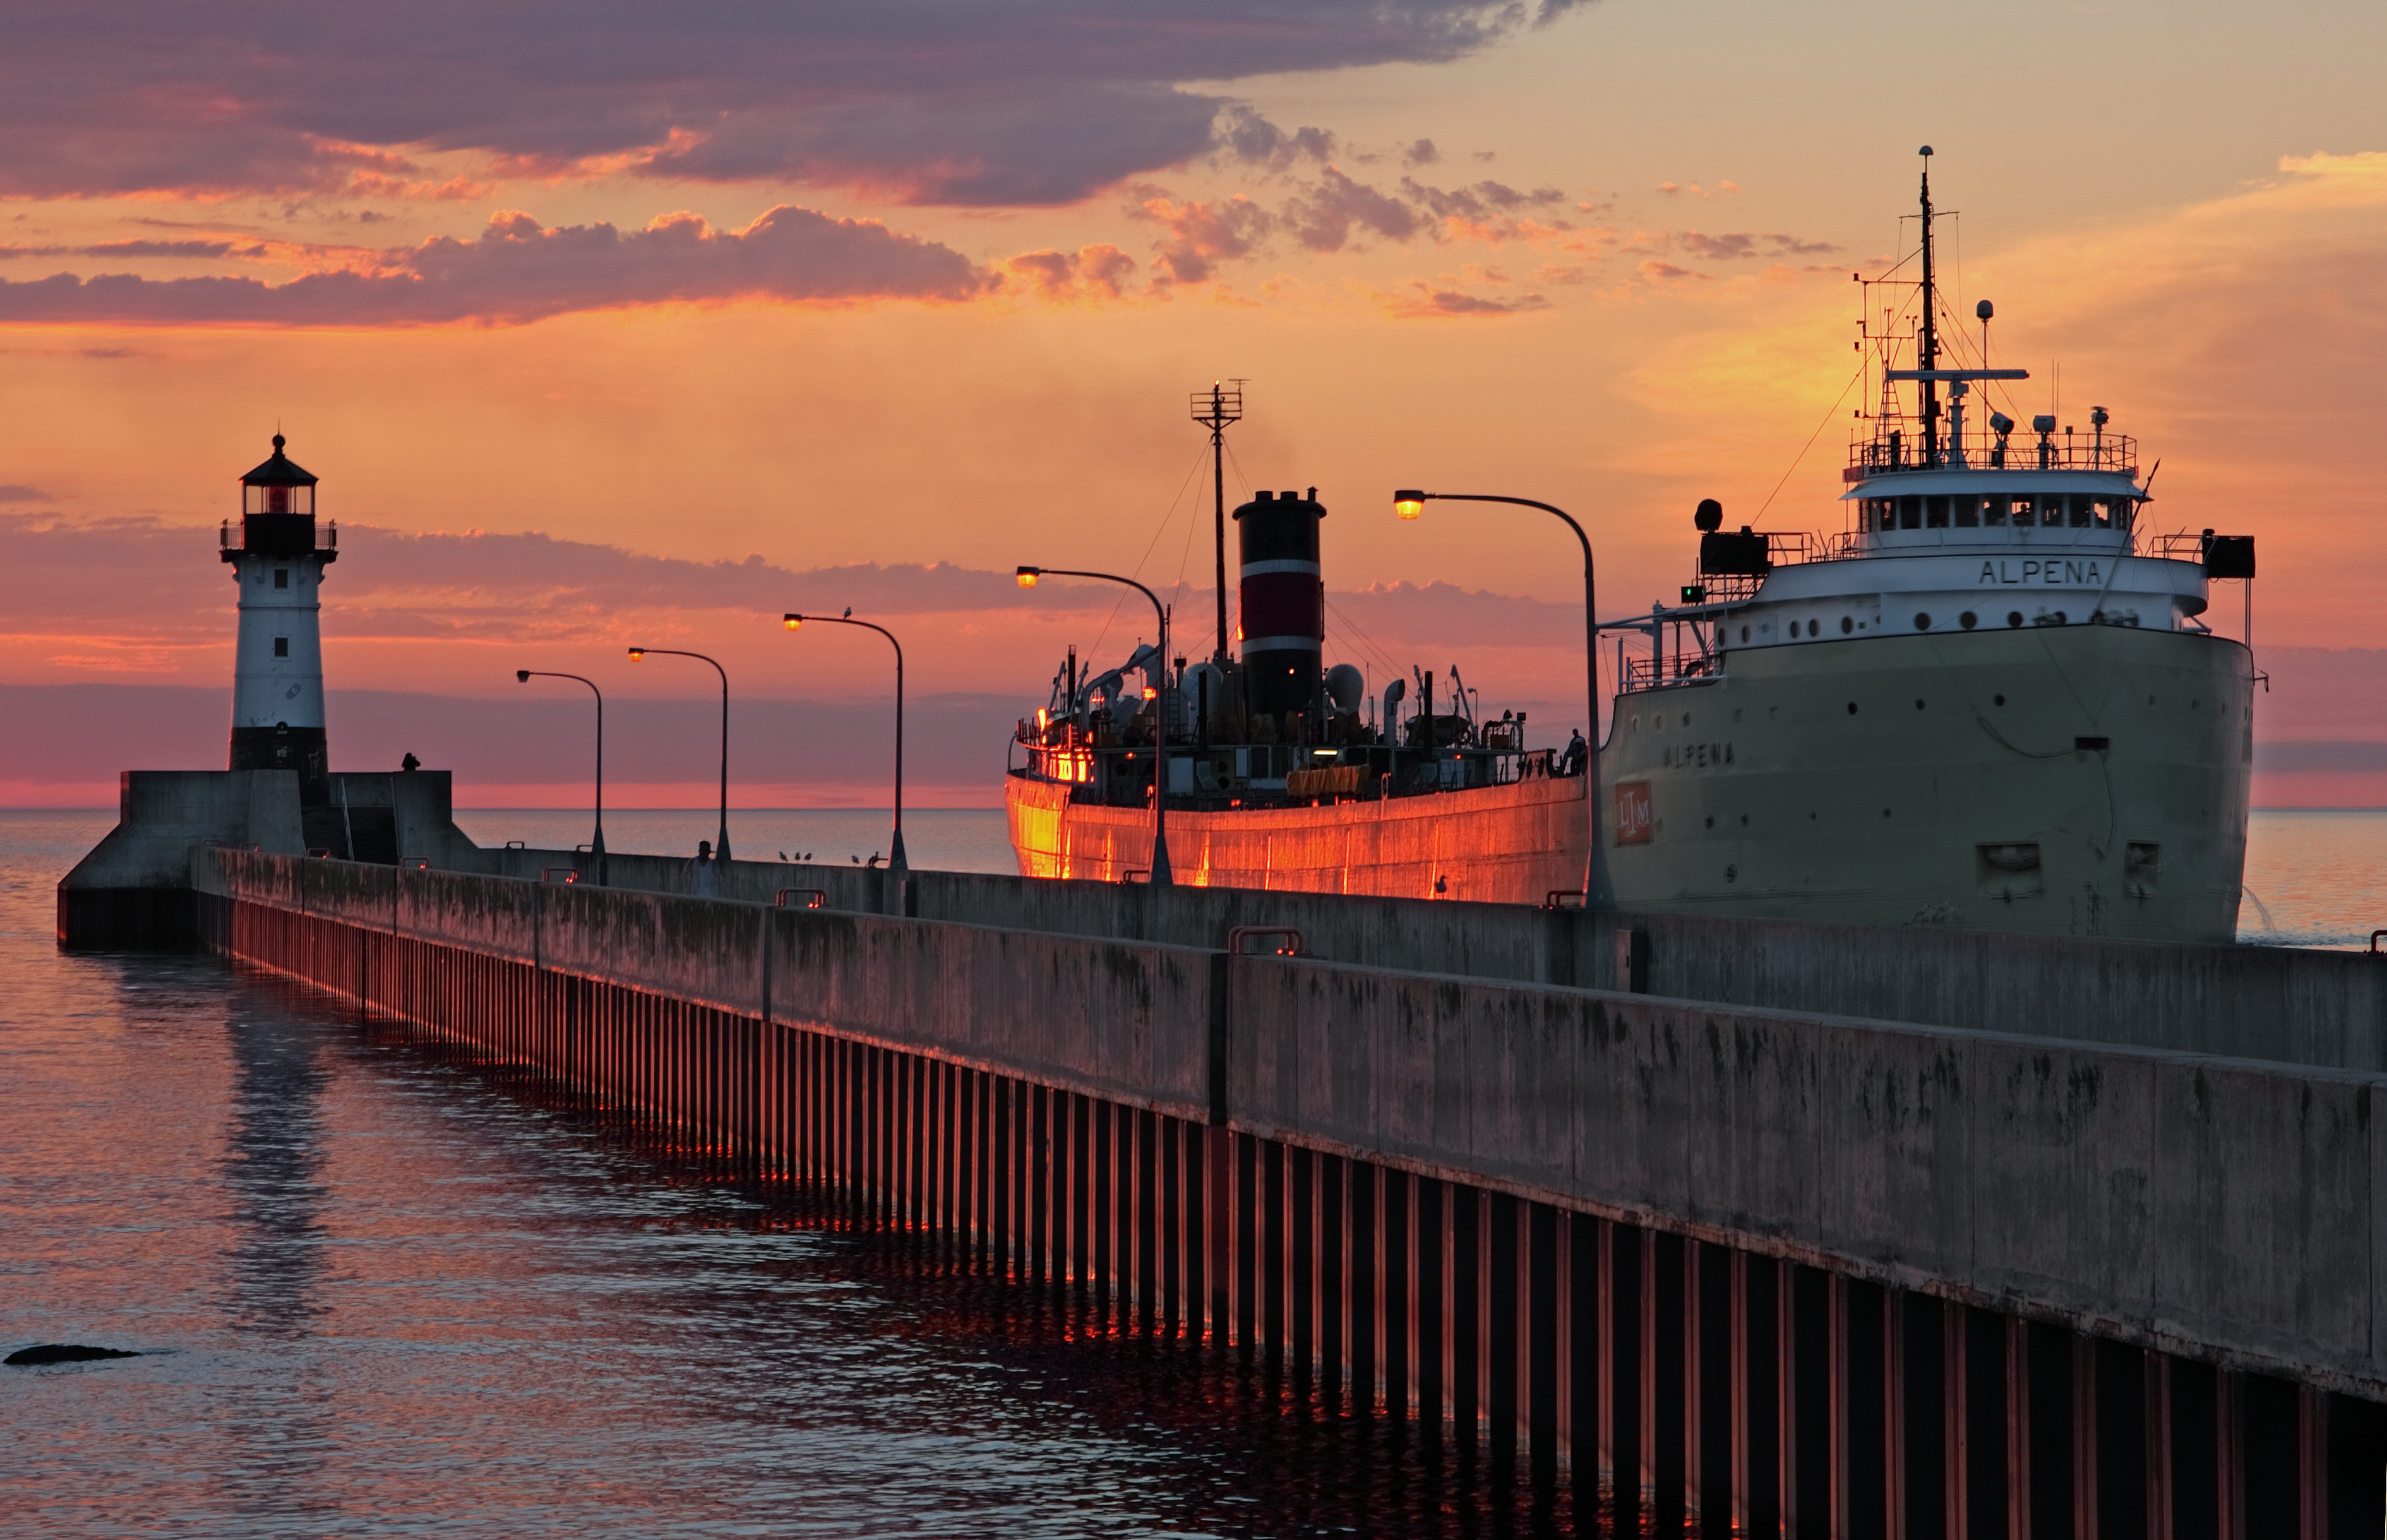 Duluth lighthouse and ship